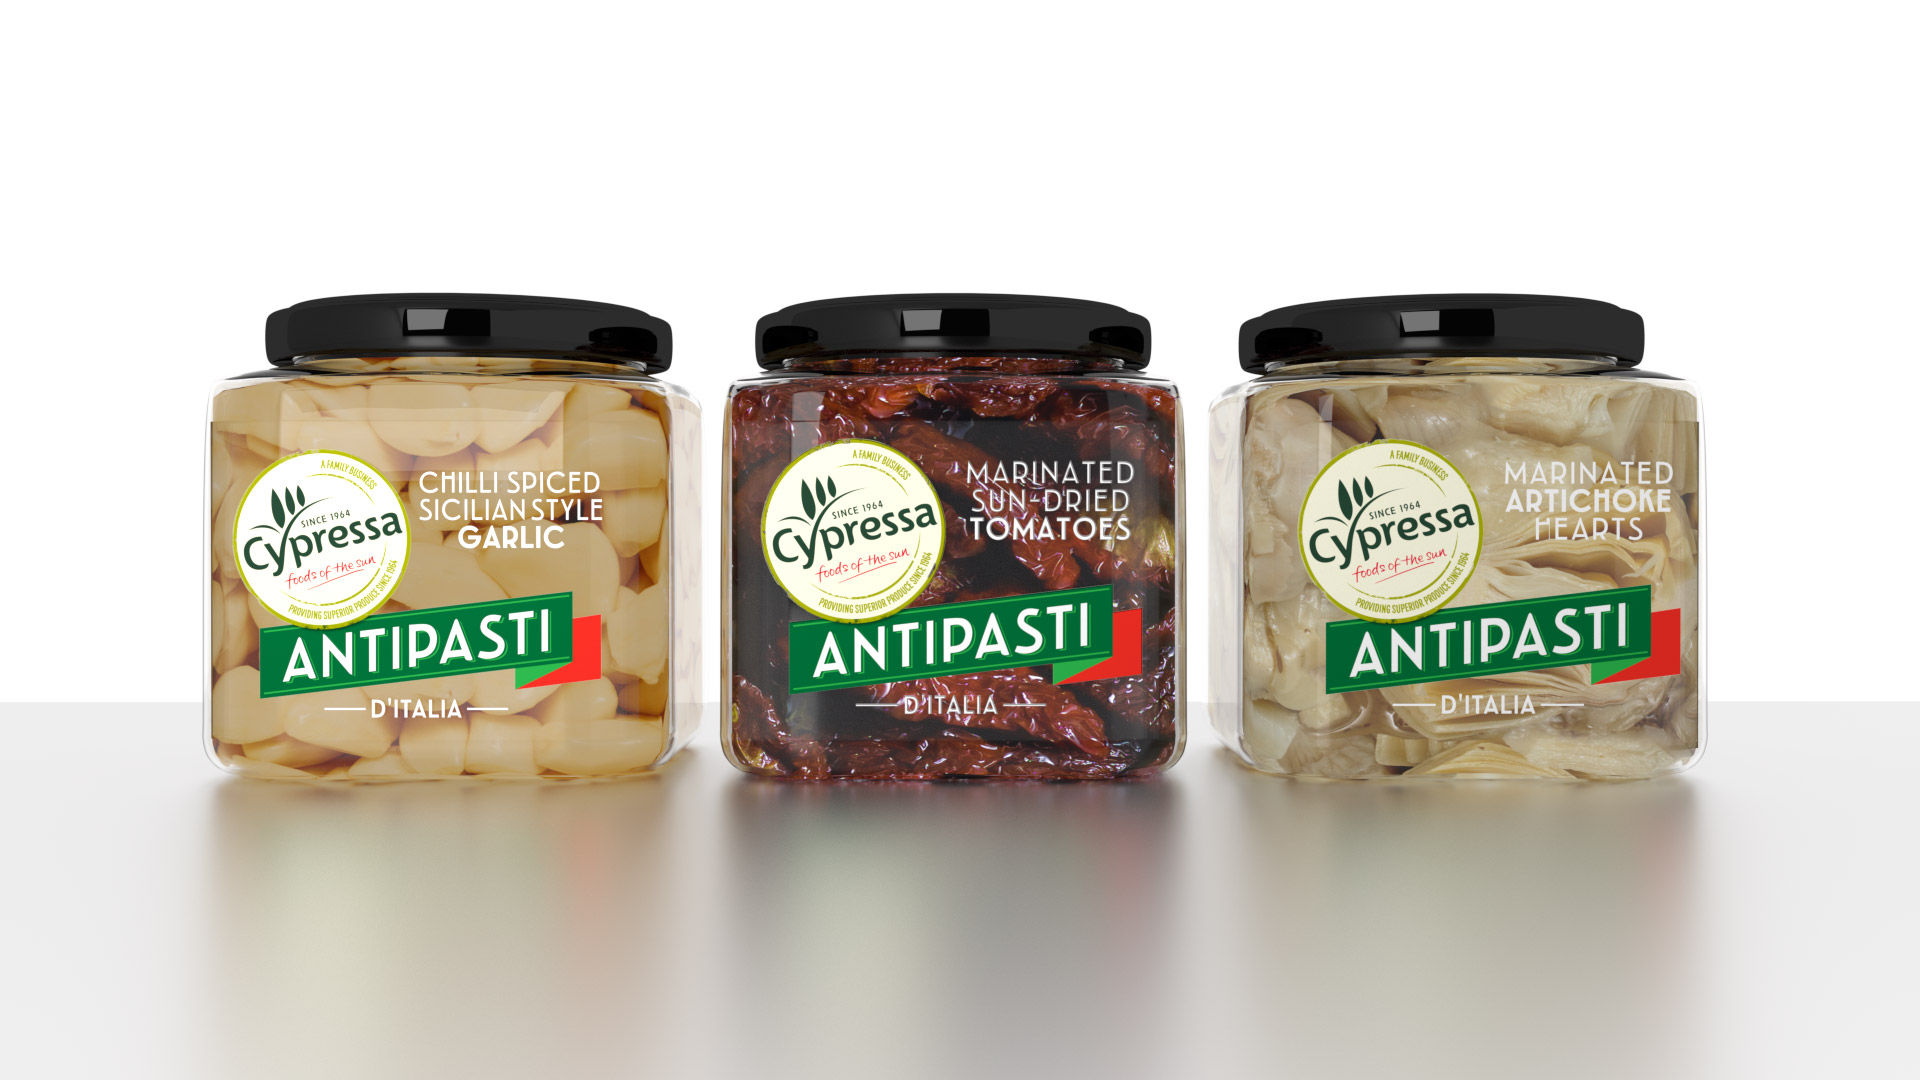 cypressa antipasti - Slice Design branding and packaging design